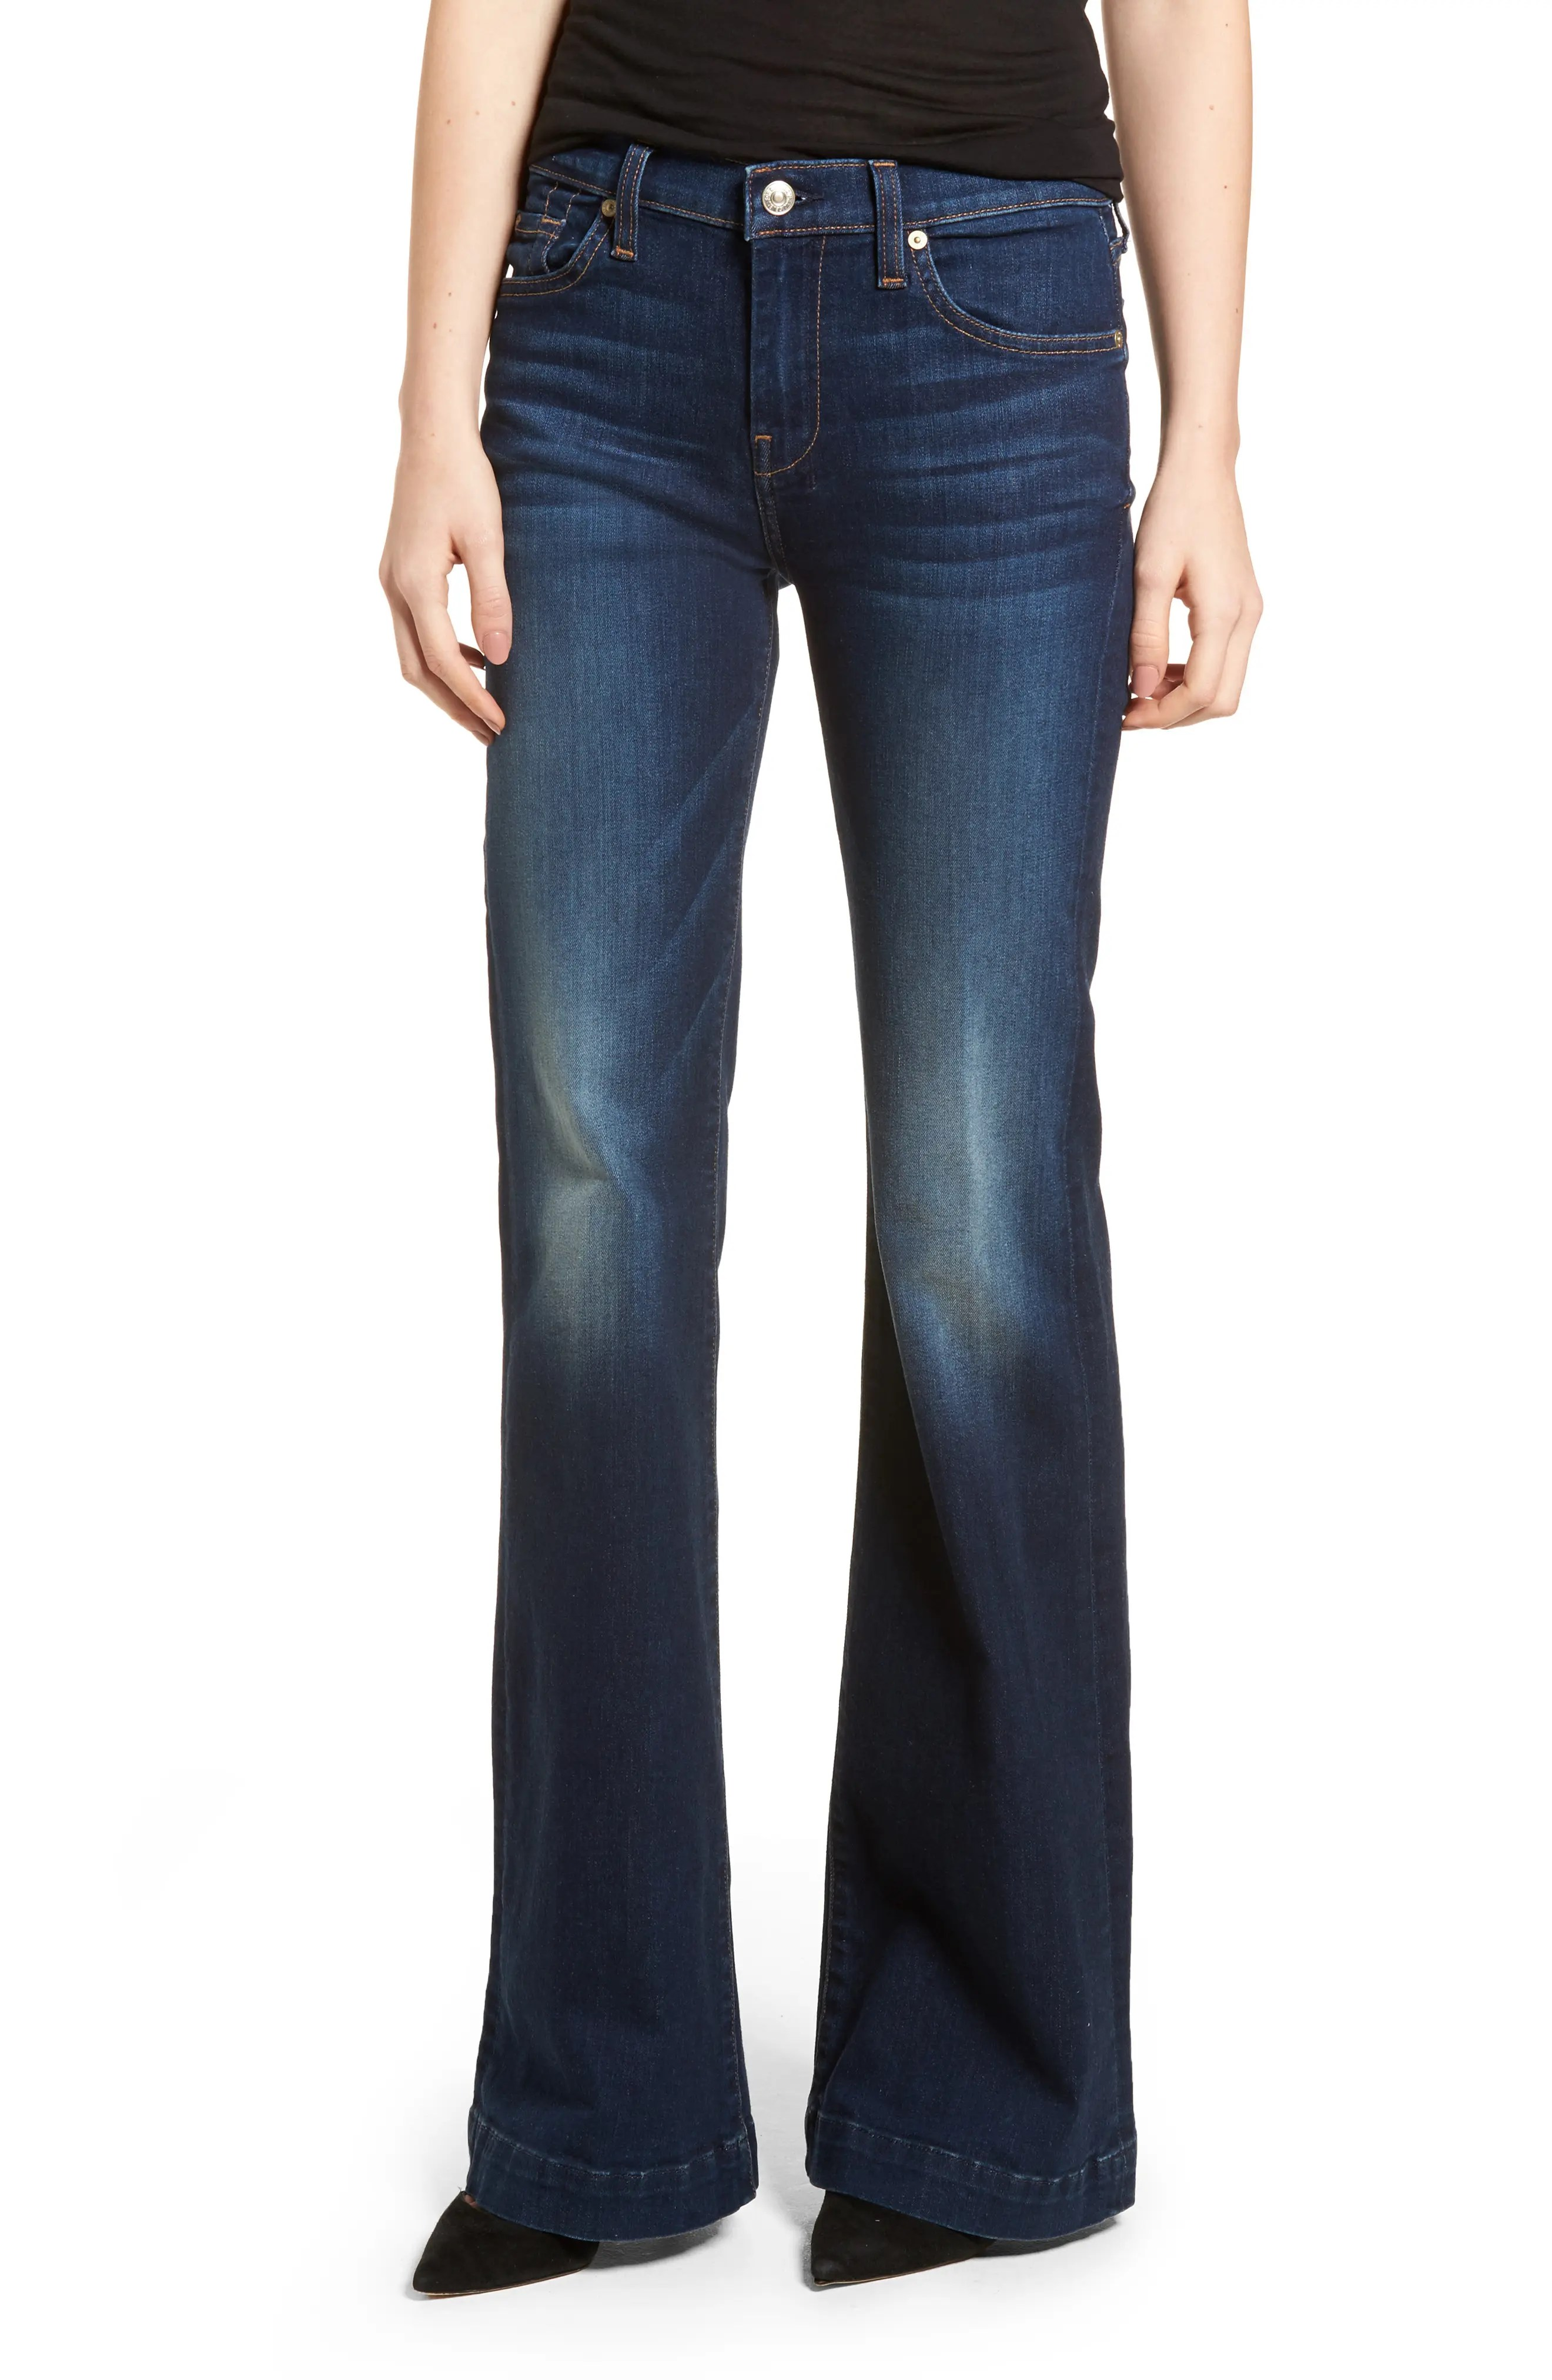 for all mankind dojo wide leg jeans moreno also men   women nordstrom rh shoprdstrom